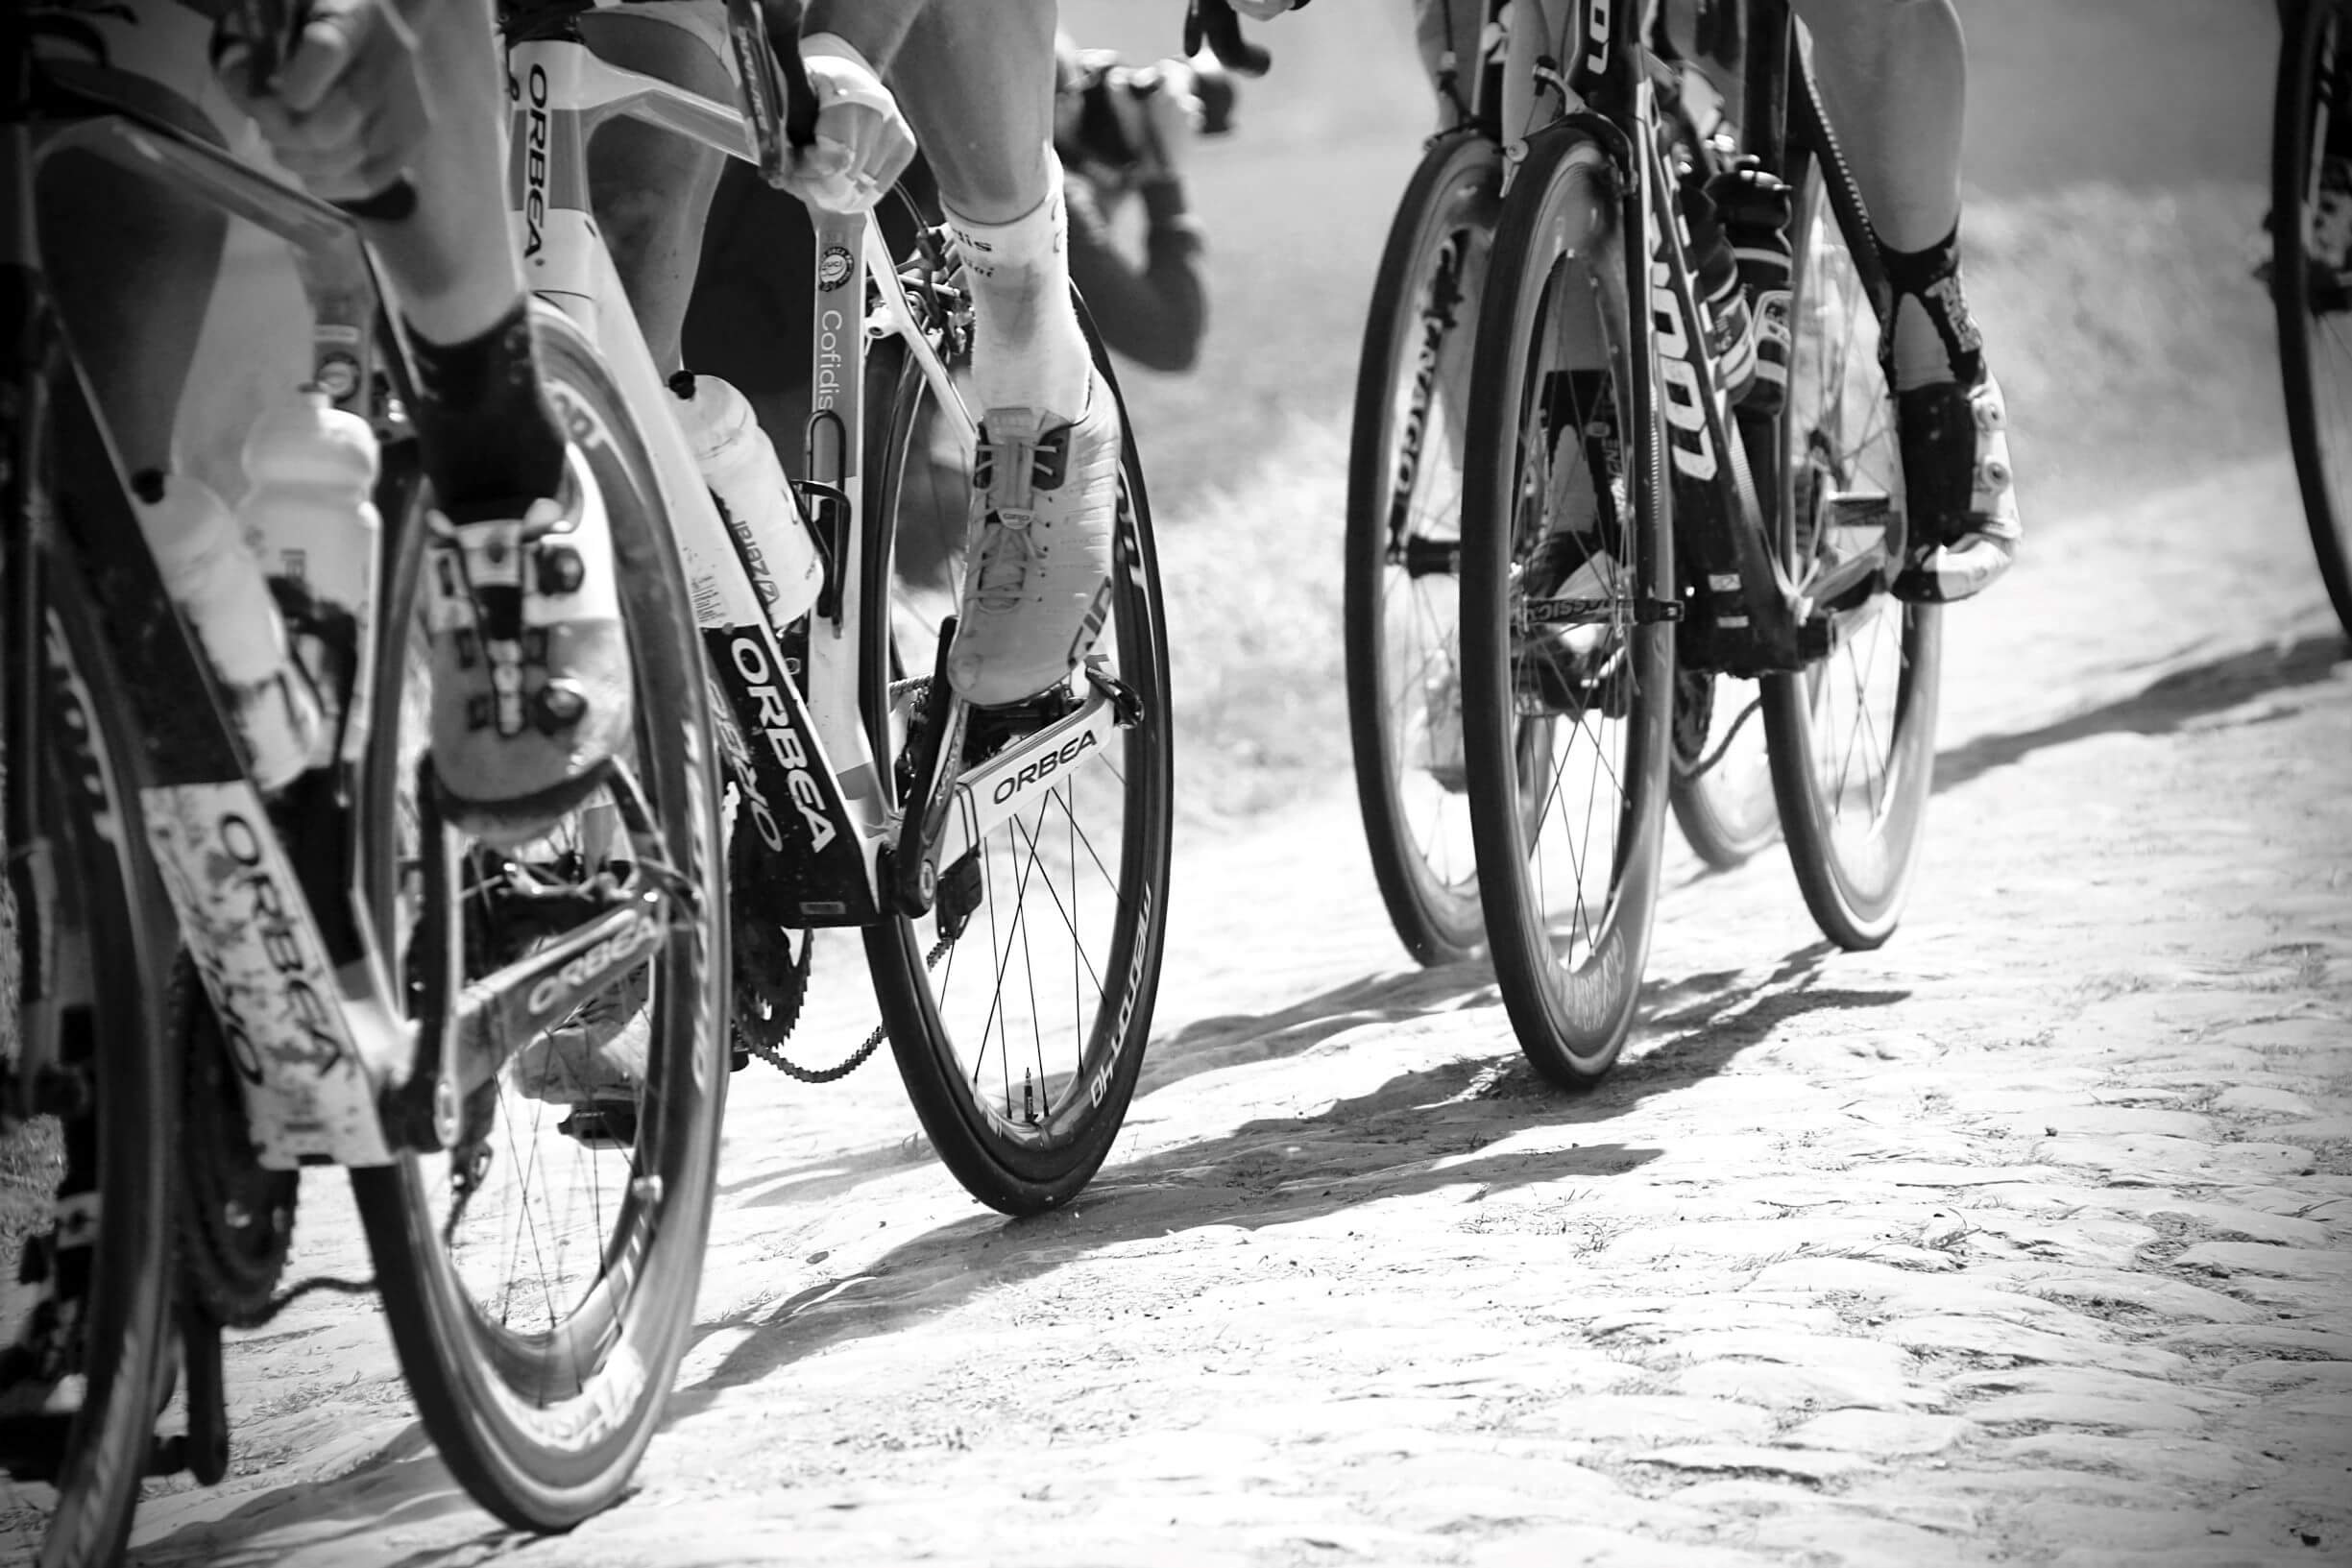 Beginner's Guide To Cleaning Smelly Cycling Shoes